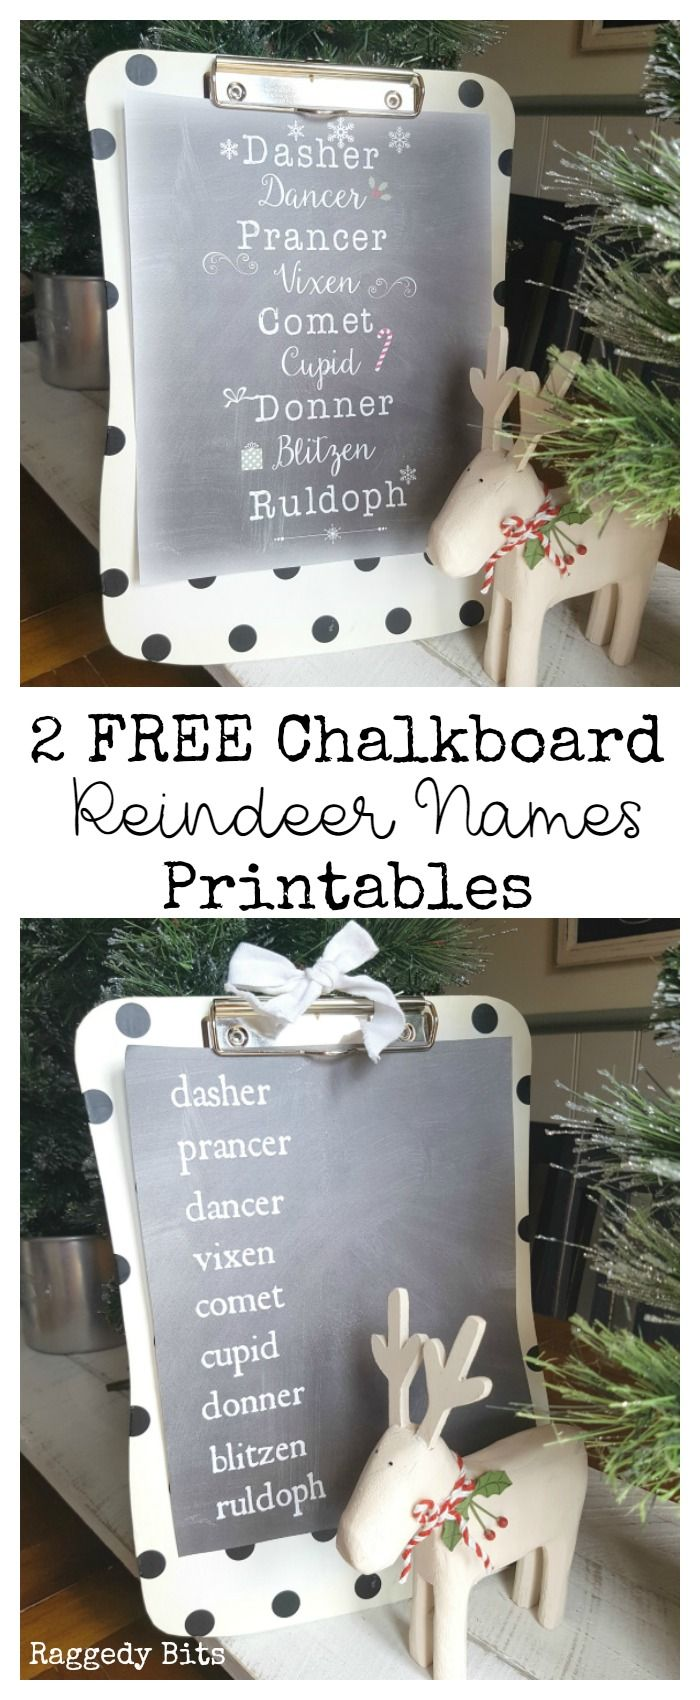 A choice of 2 FREE Chalkboard Reindeer Name Printables to decorate your home with this Christmas |